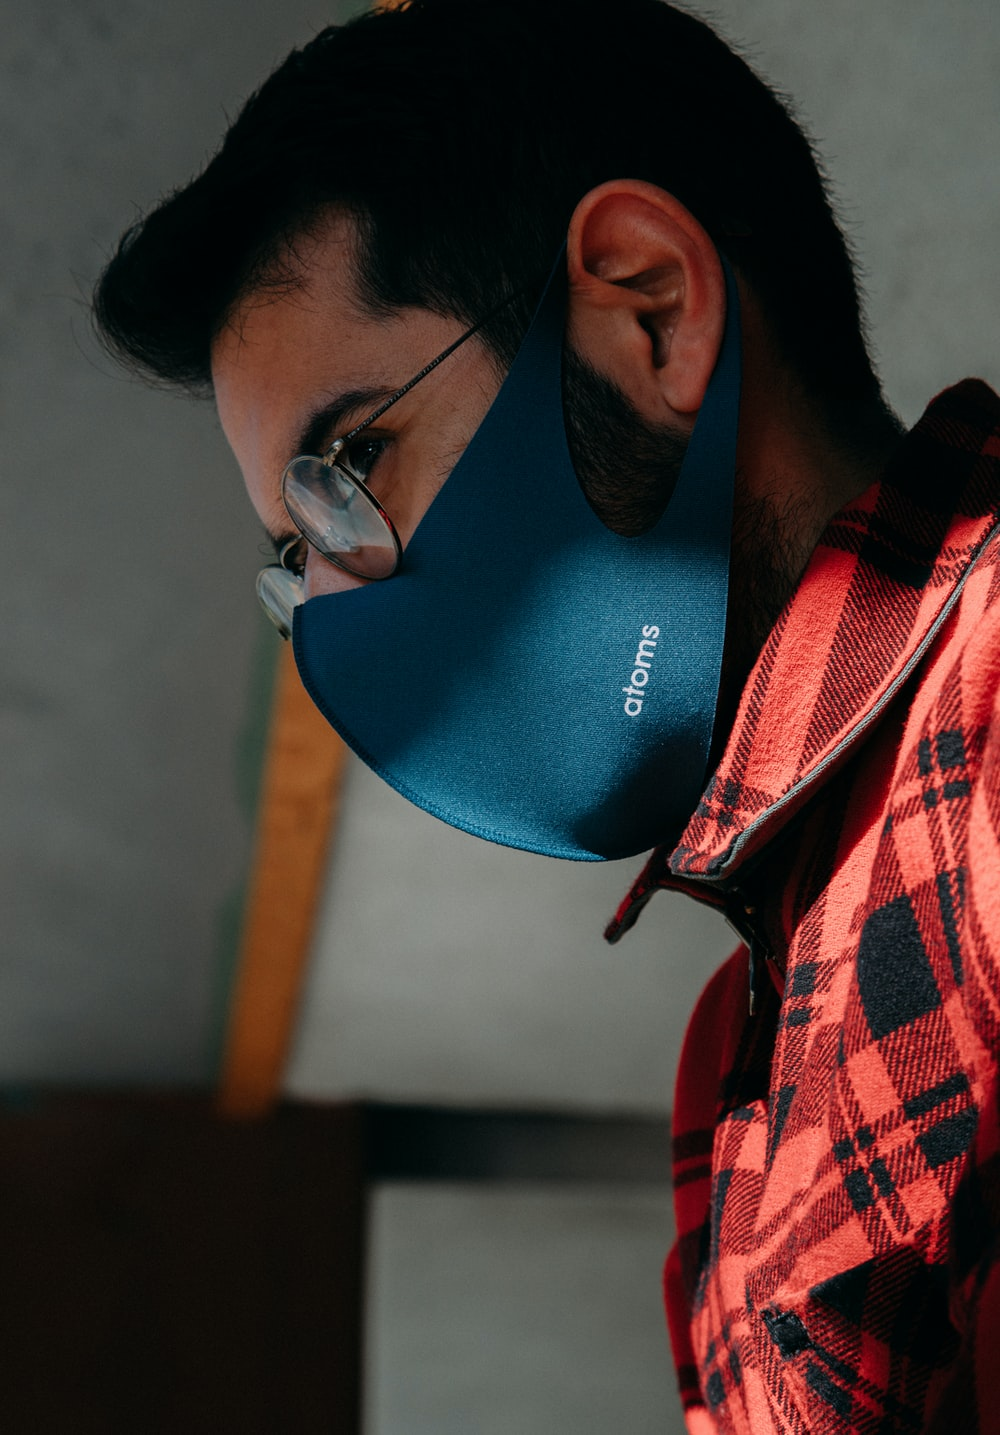 man in red and white plaid shirt wearing blue and white goggles